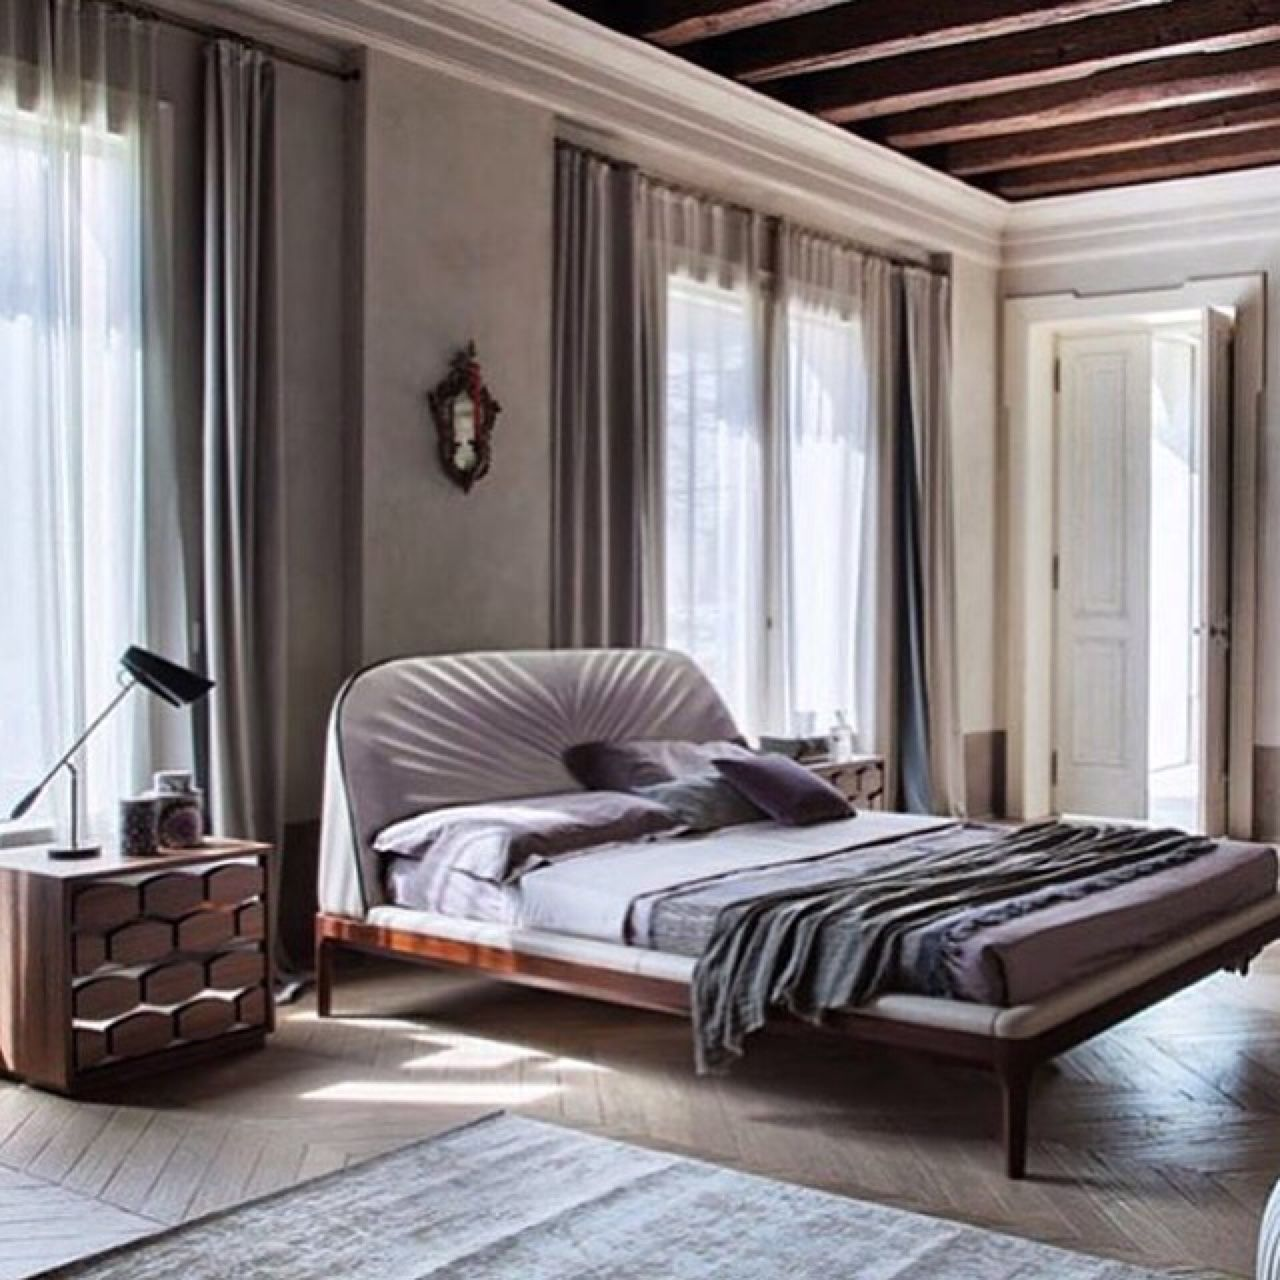 Pin by barbara fink on bedrooms pinterest interiors and bedrooms